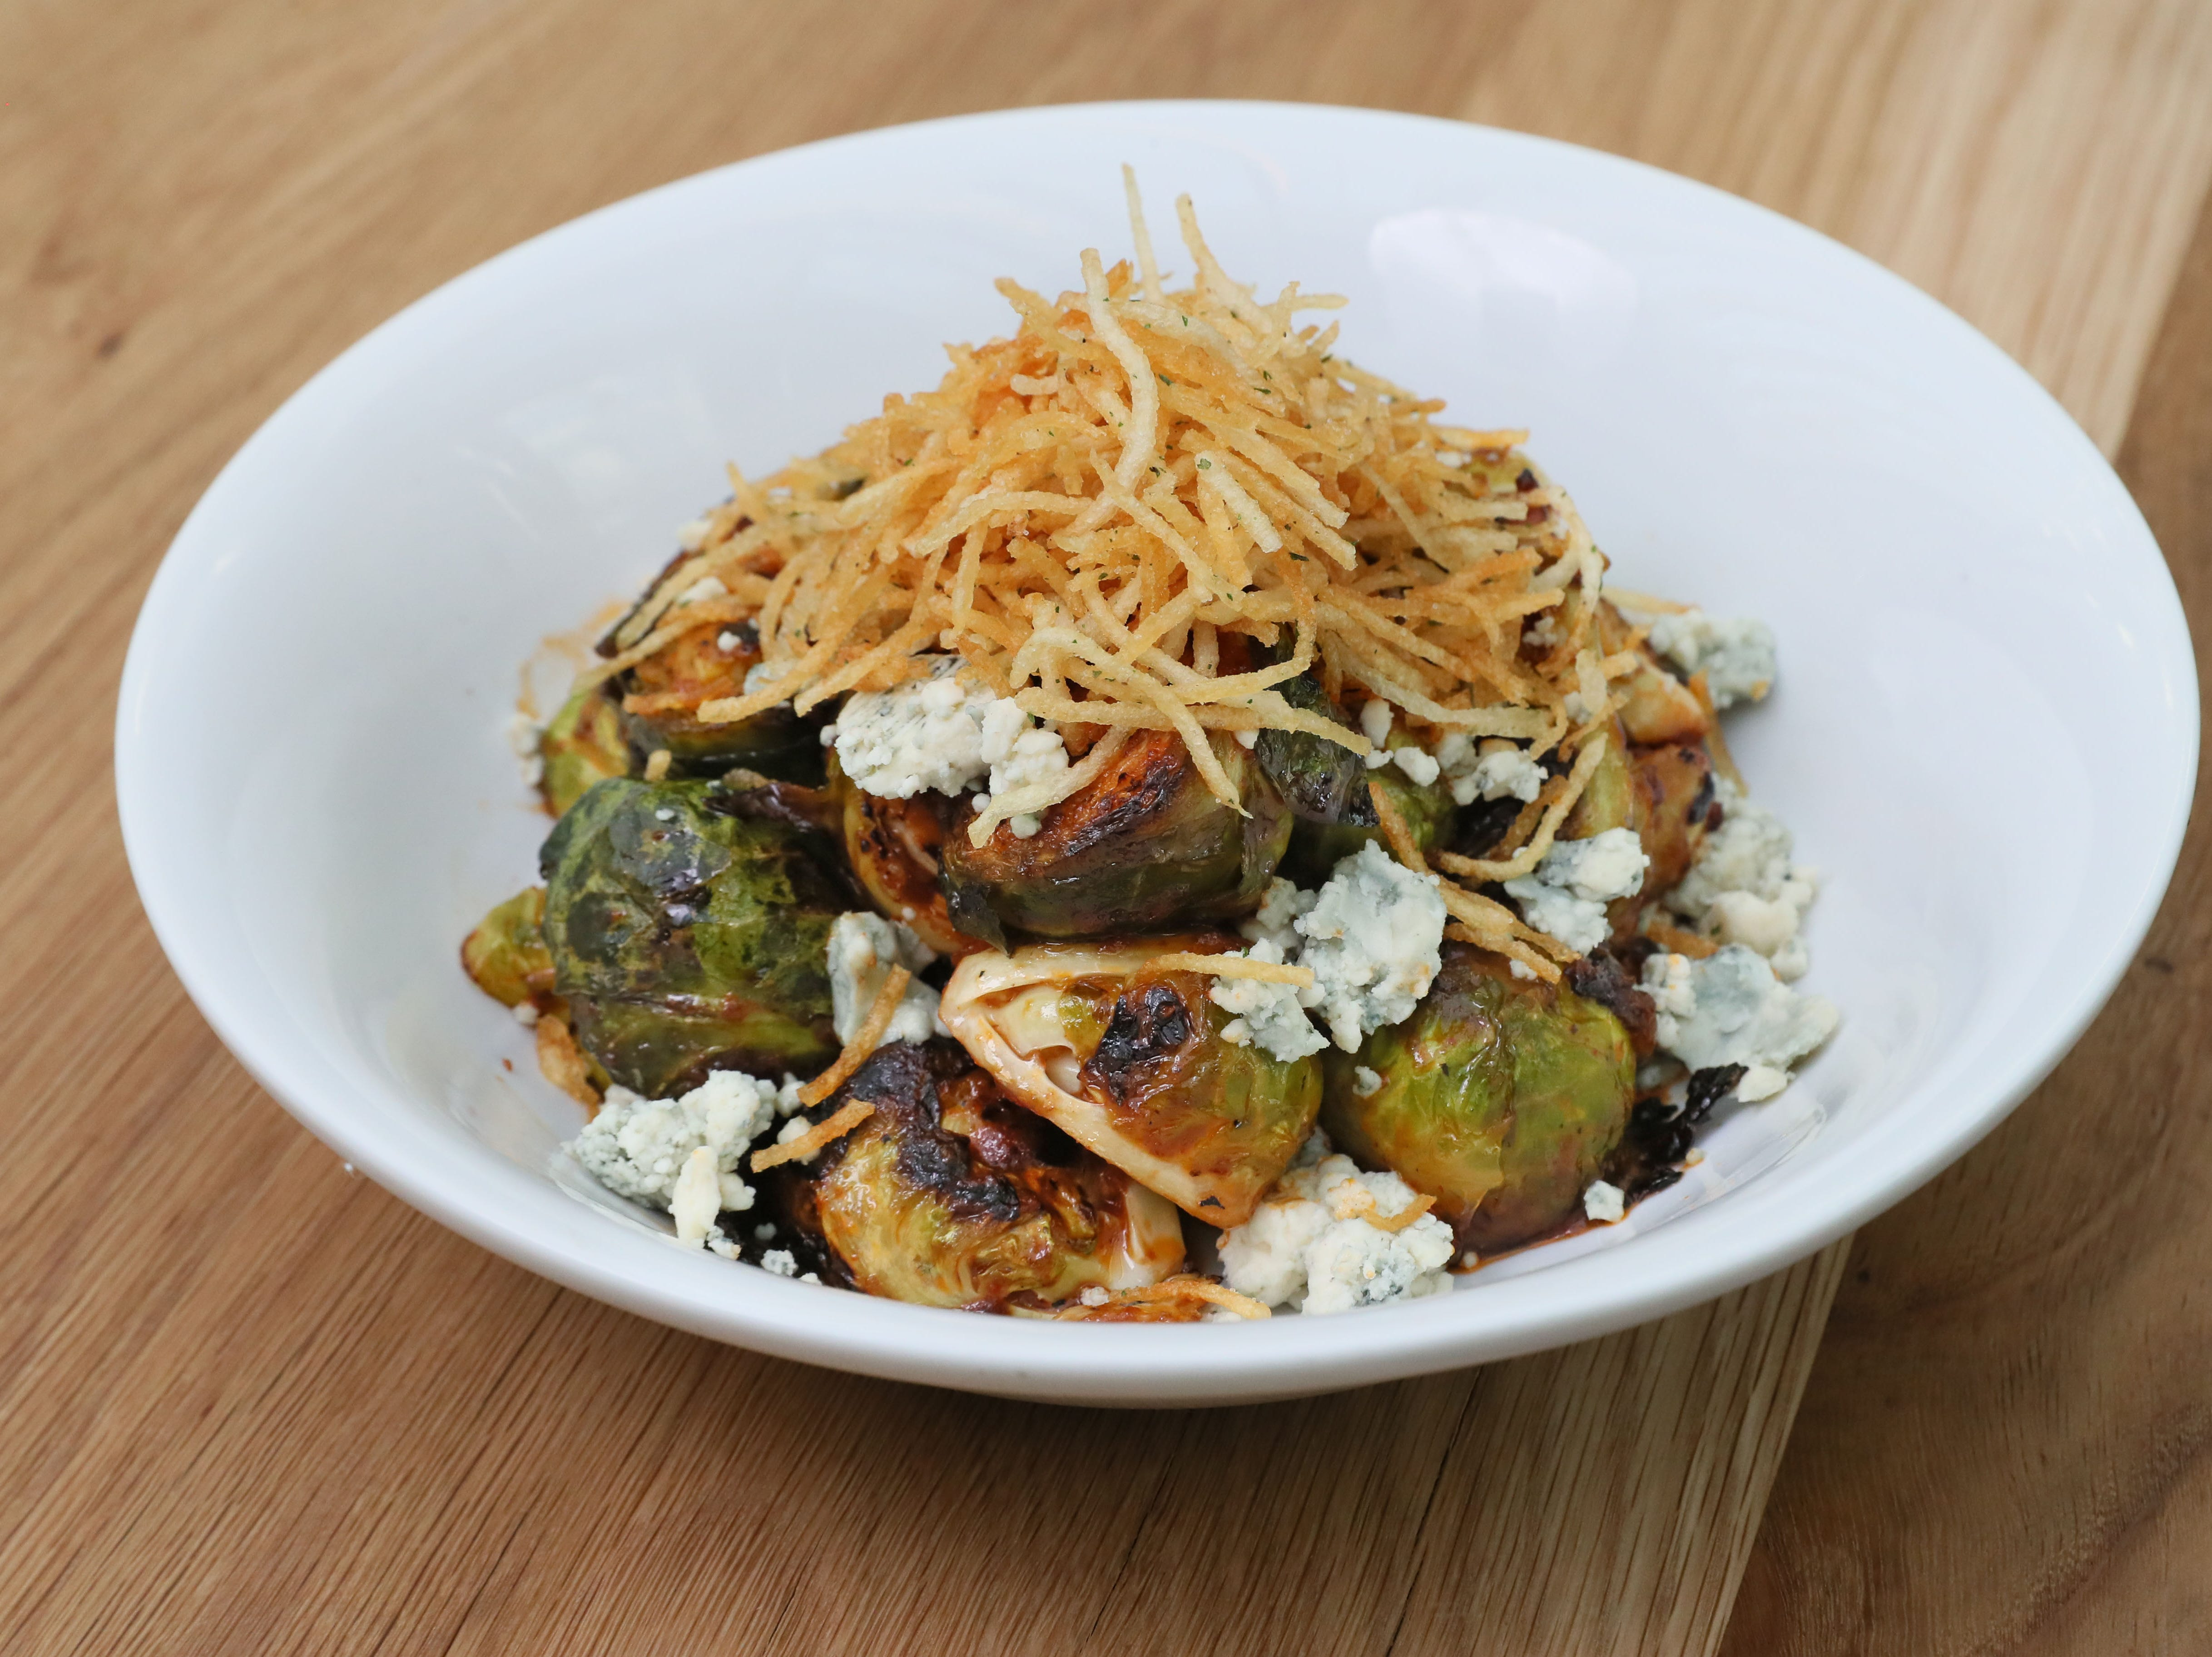 Brussels sprouts make a shareable snack when they're griddled and tossed in spicier-than-usual Buffalo sauce and topped with blue cheese and crunchy shoestring potatoes at Glass + Griddle.